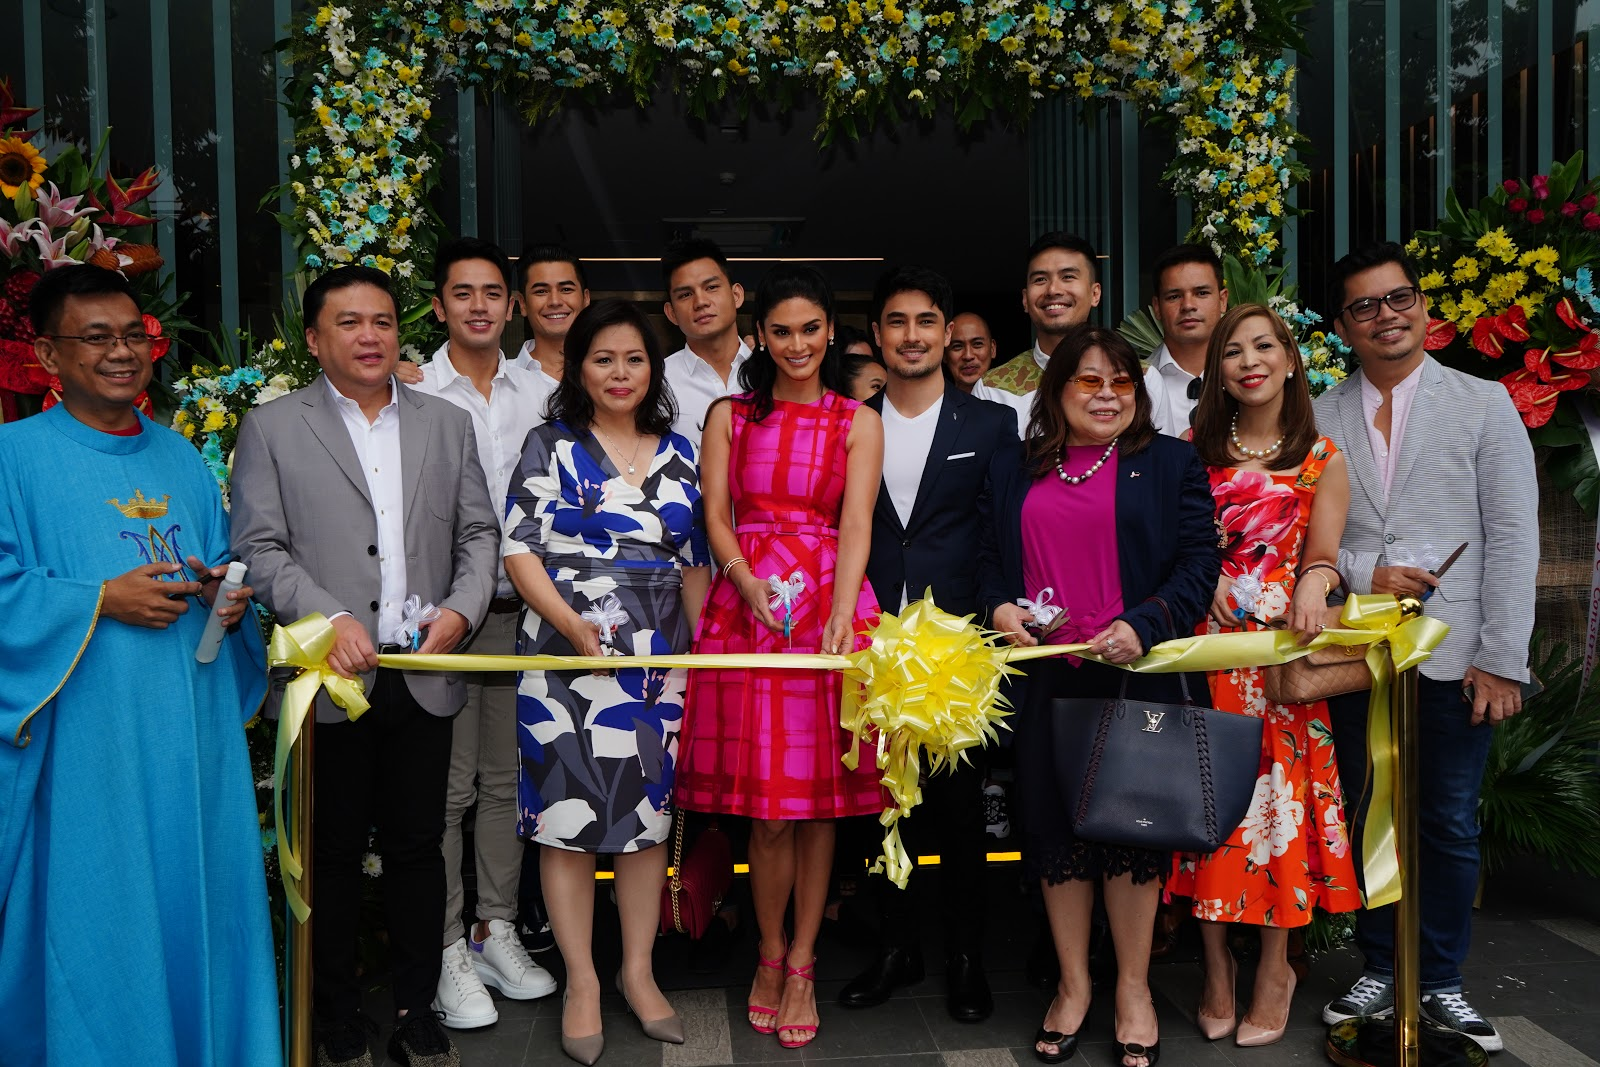 BlueWater Day Spa Opens Their 6th Branch in Ortigas